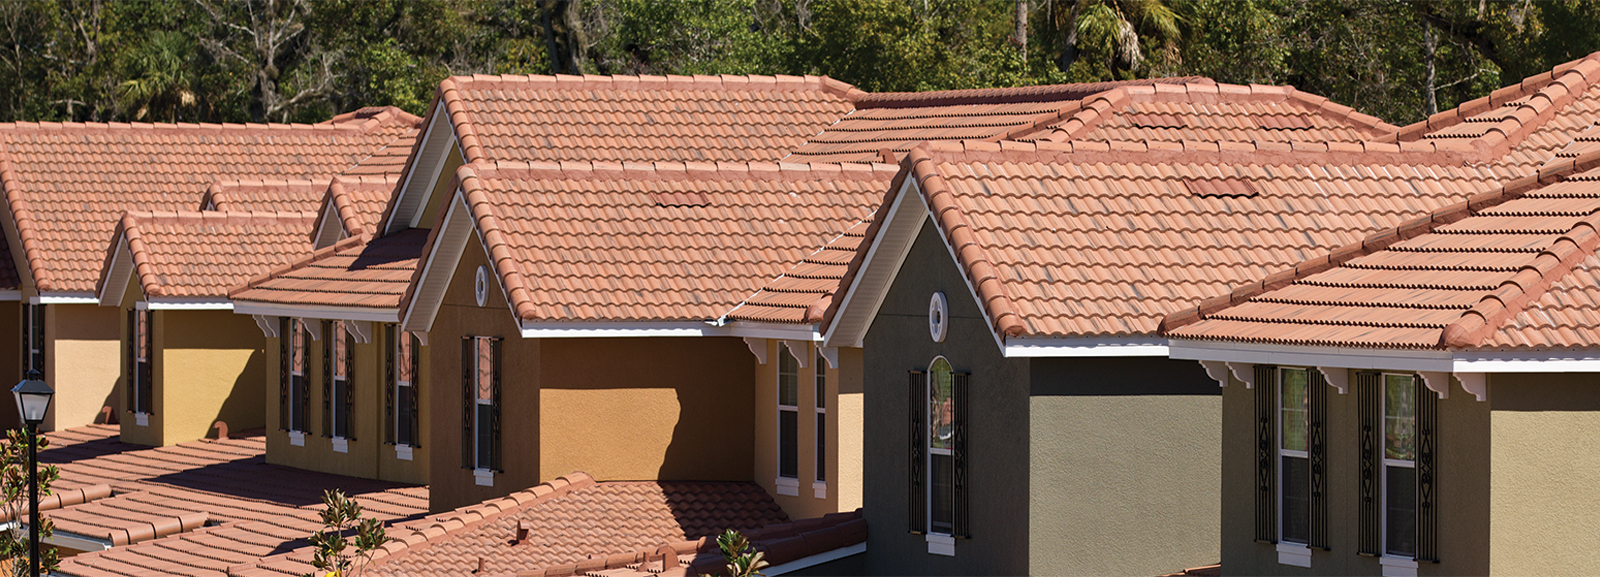 Tile Roofing Contact Us